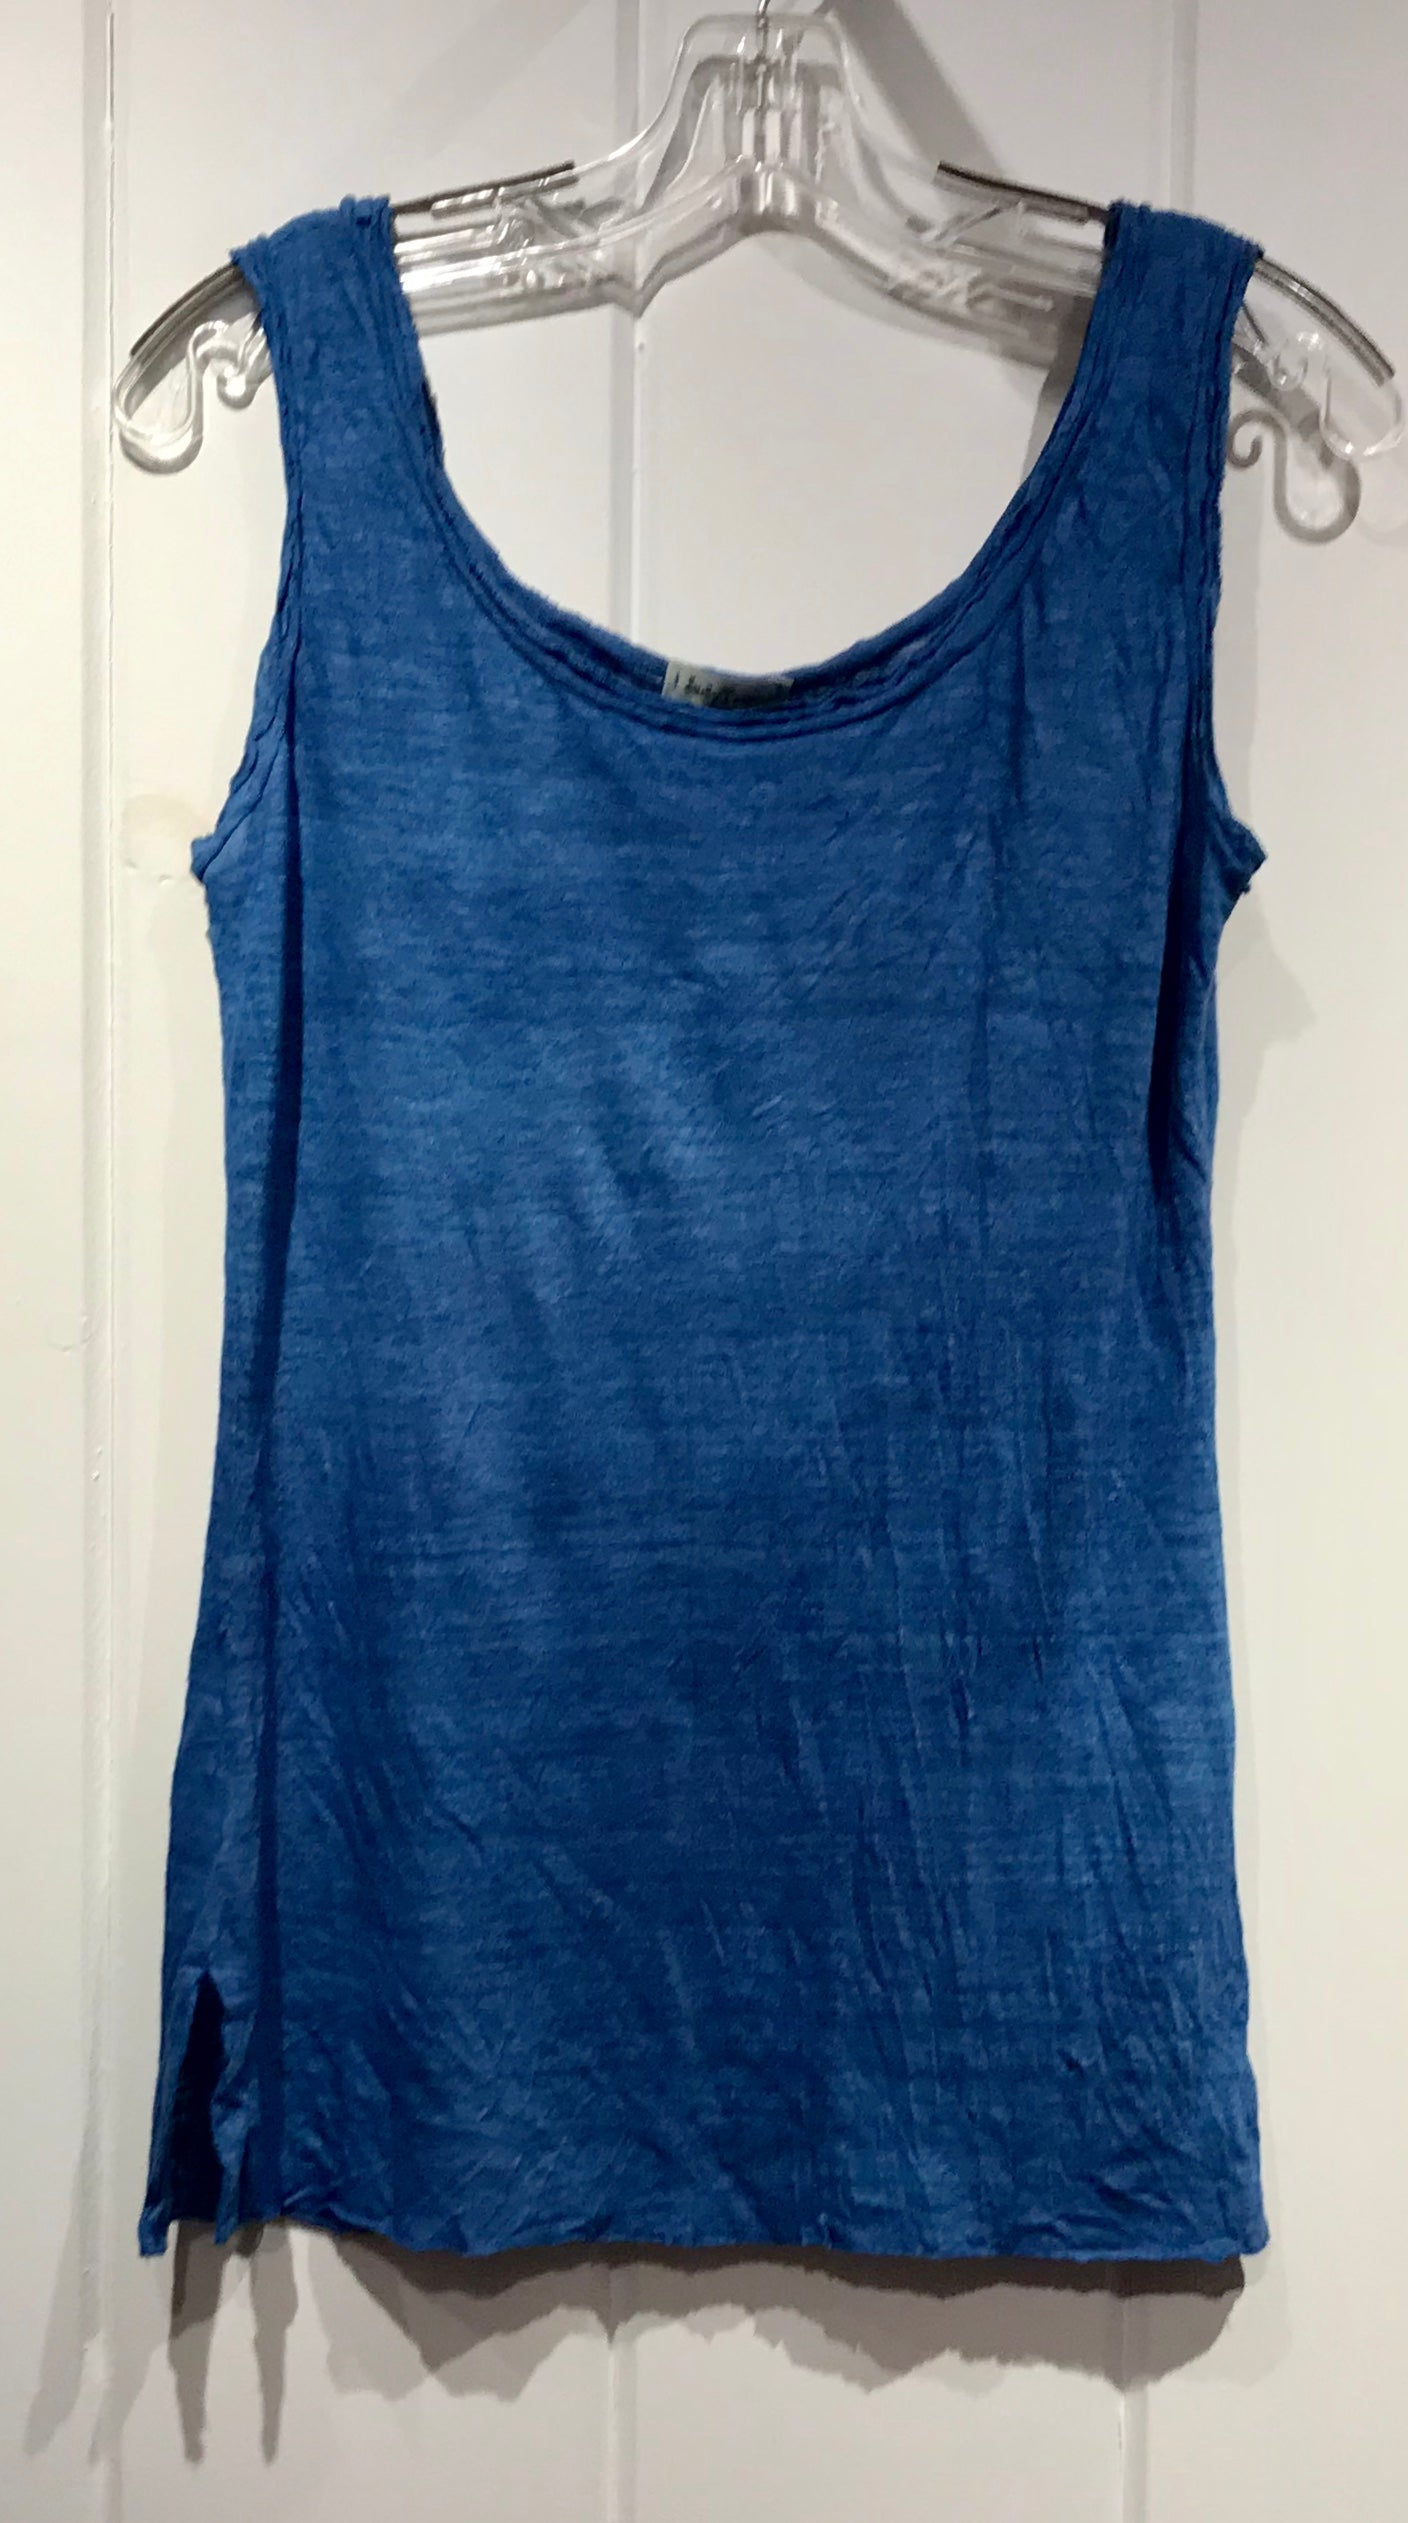 Judy Tampa Linen Knit Tank in Indigo, Sz M, on Sale